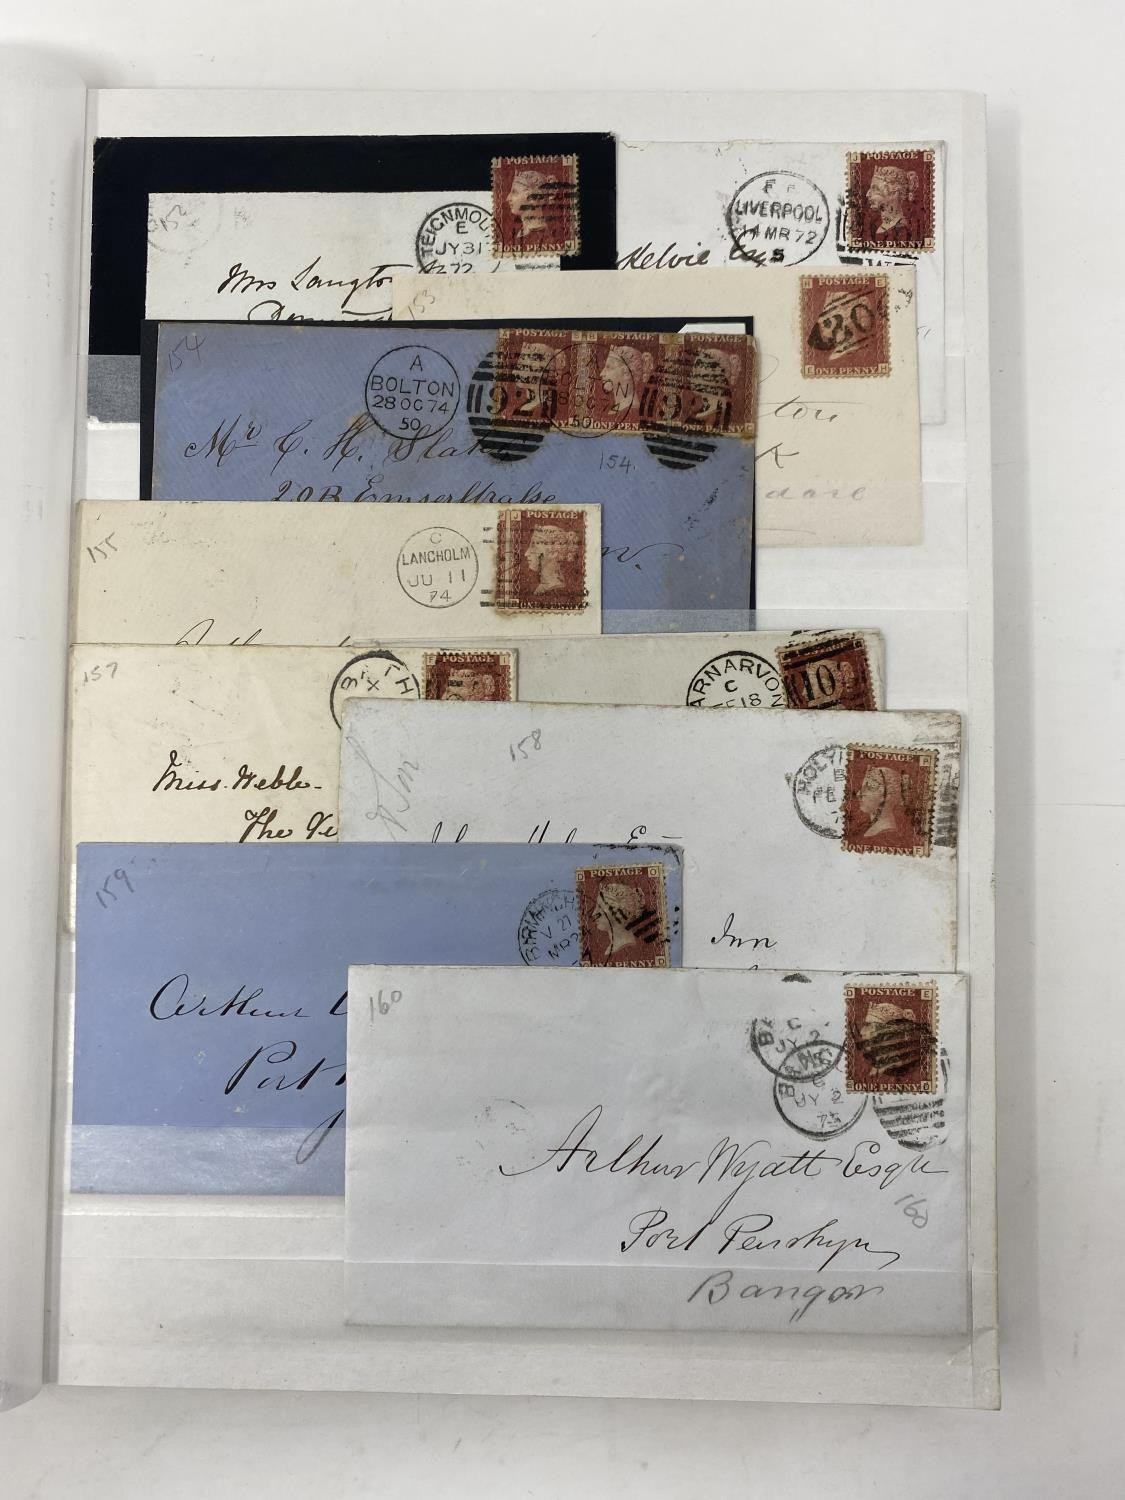 Great Britain 1858-79 1d red Plate numbers issue, a fine complete collection of plates 71-224 (excl. - Image 3 of 3